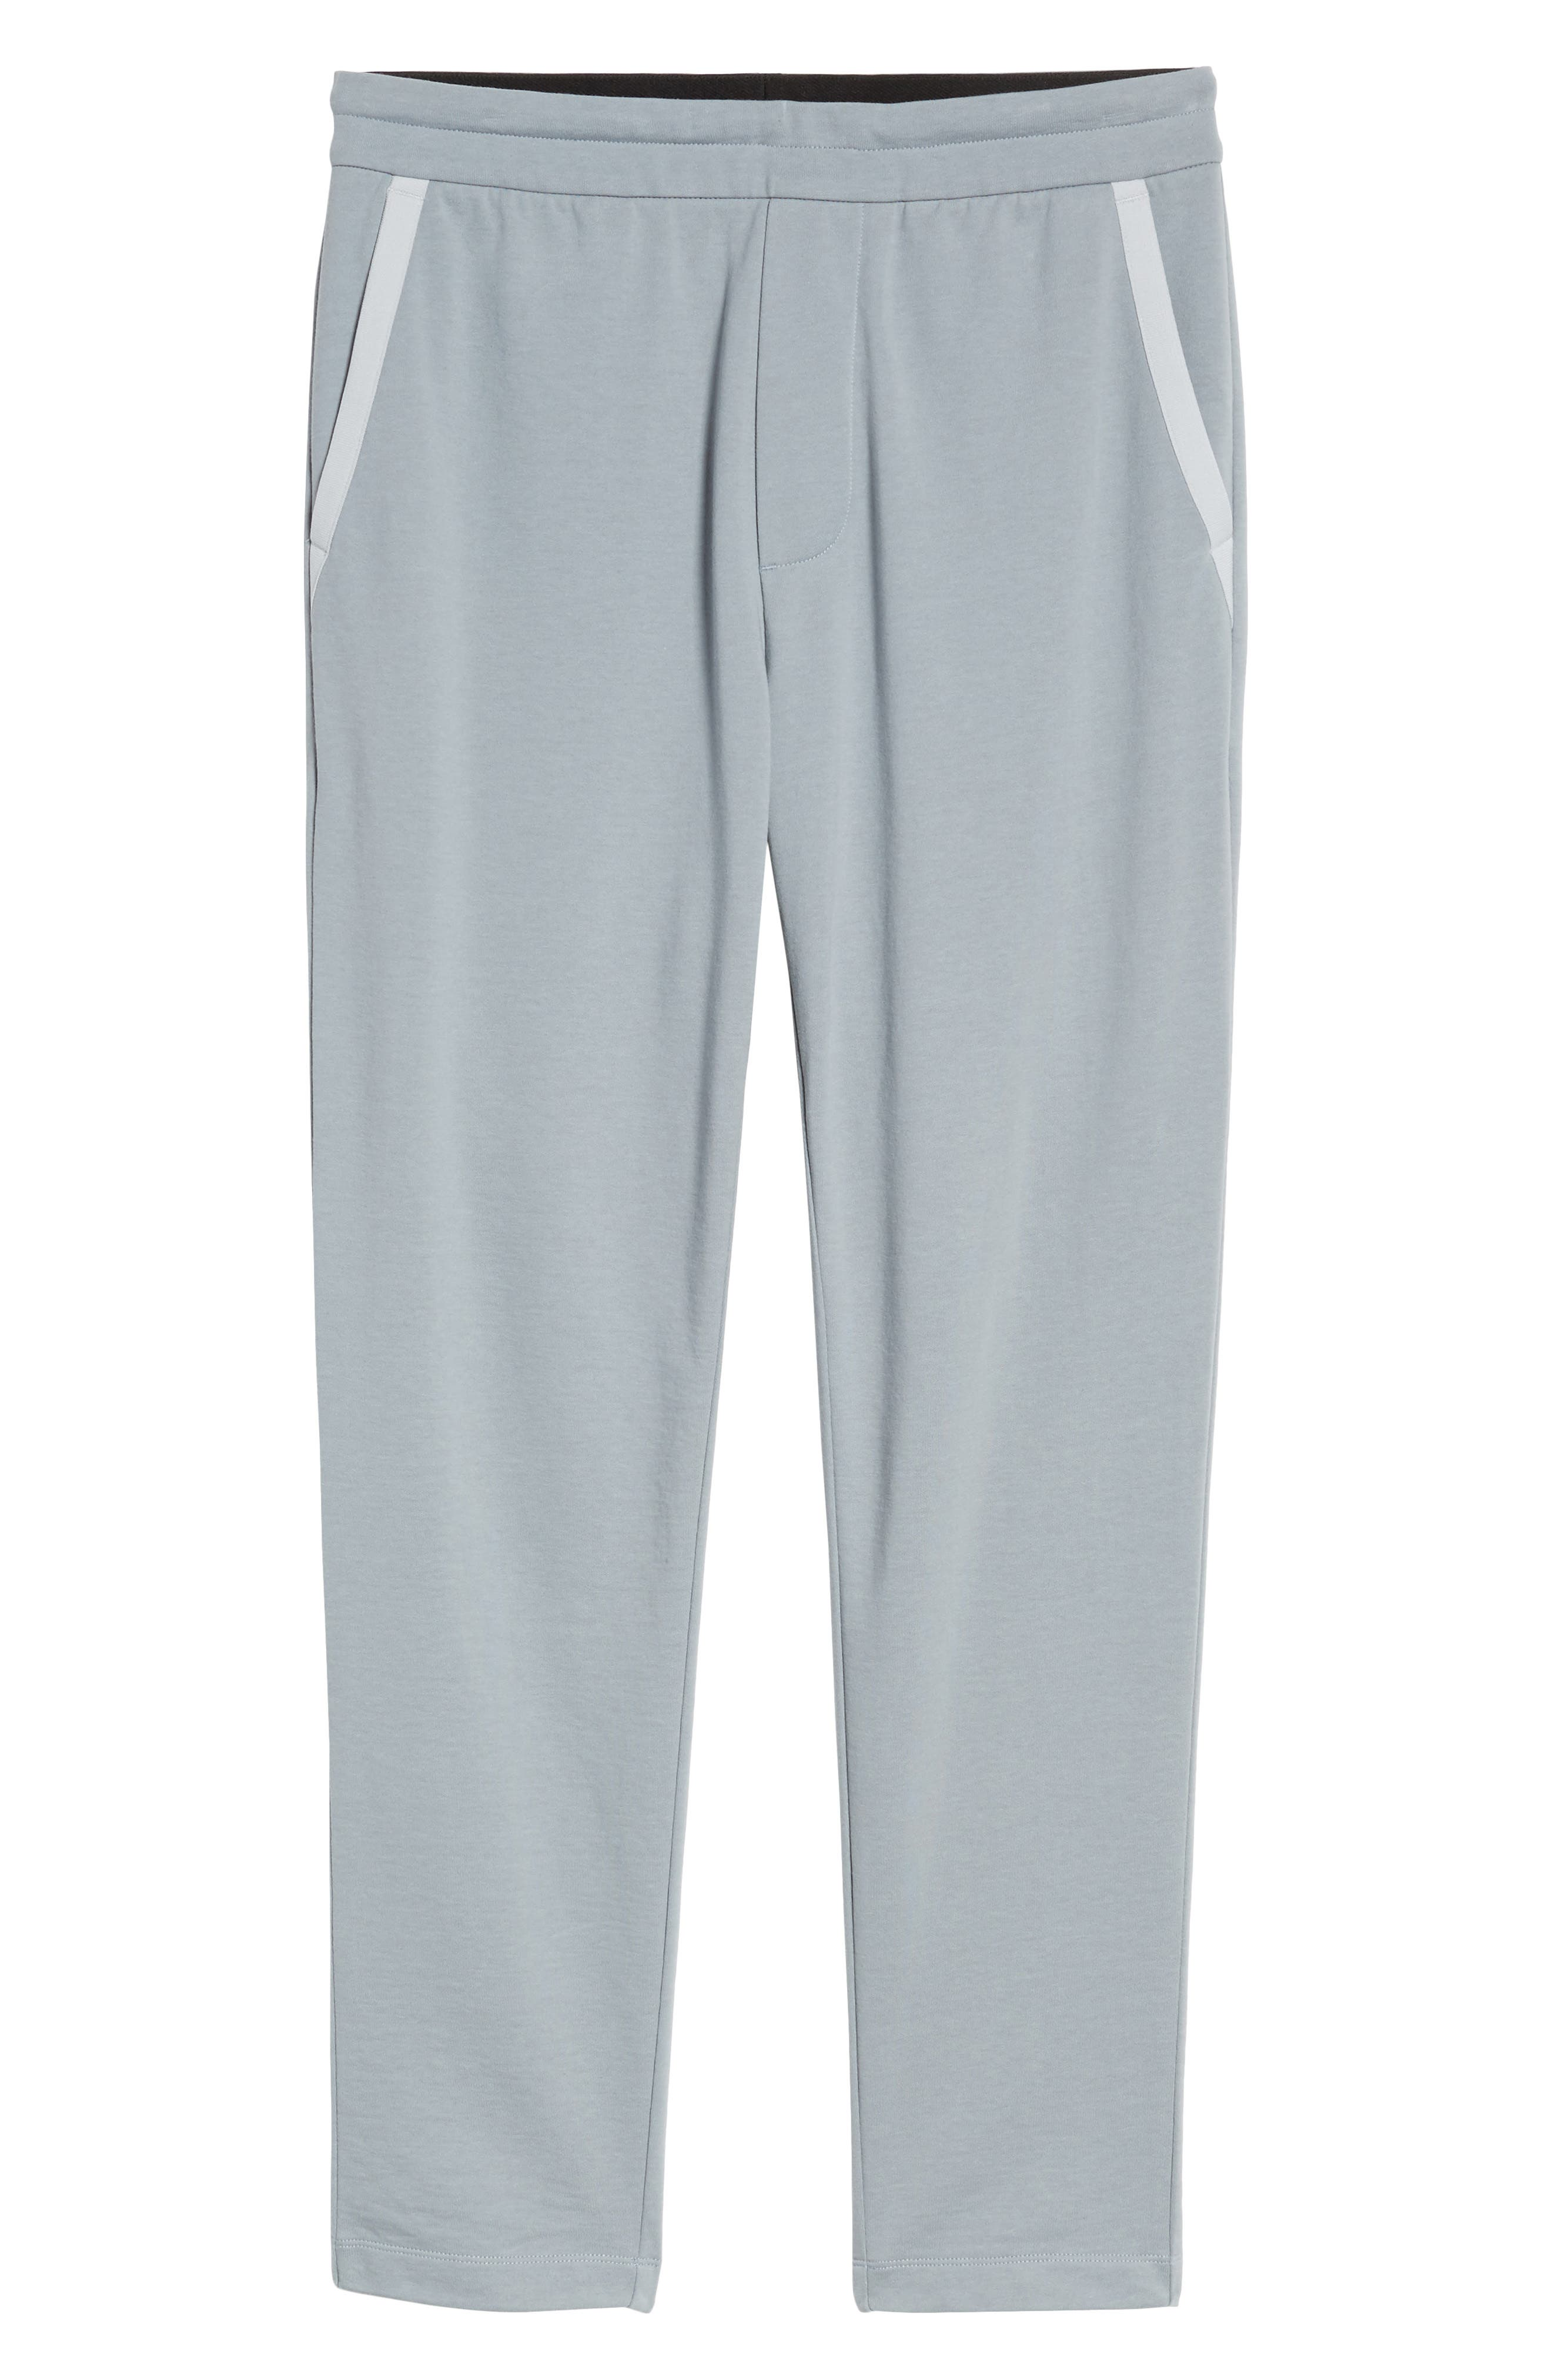 Cotton Pants,                             Alternate thumbnail 6, color,                             Grey Sky/ Light Grey